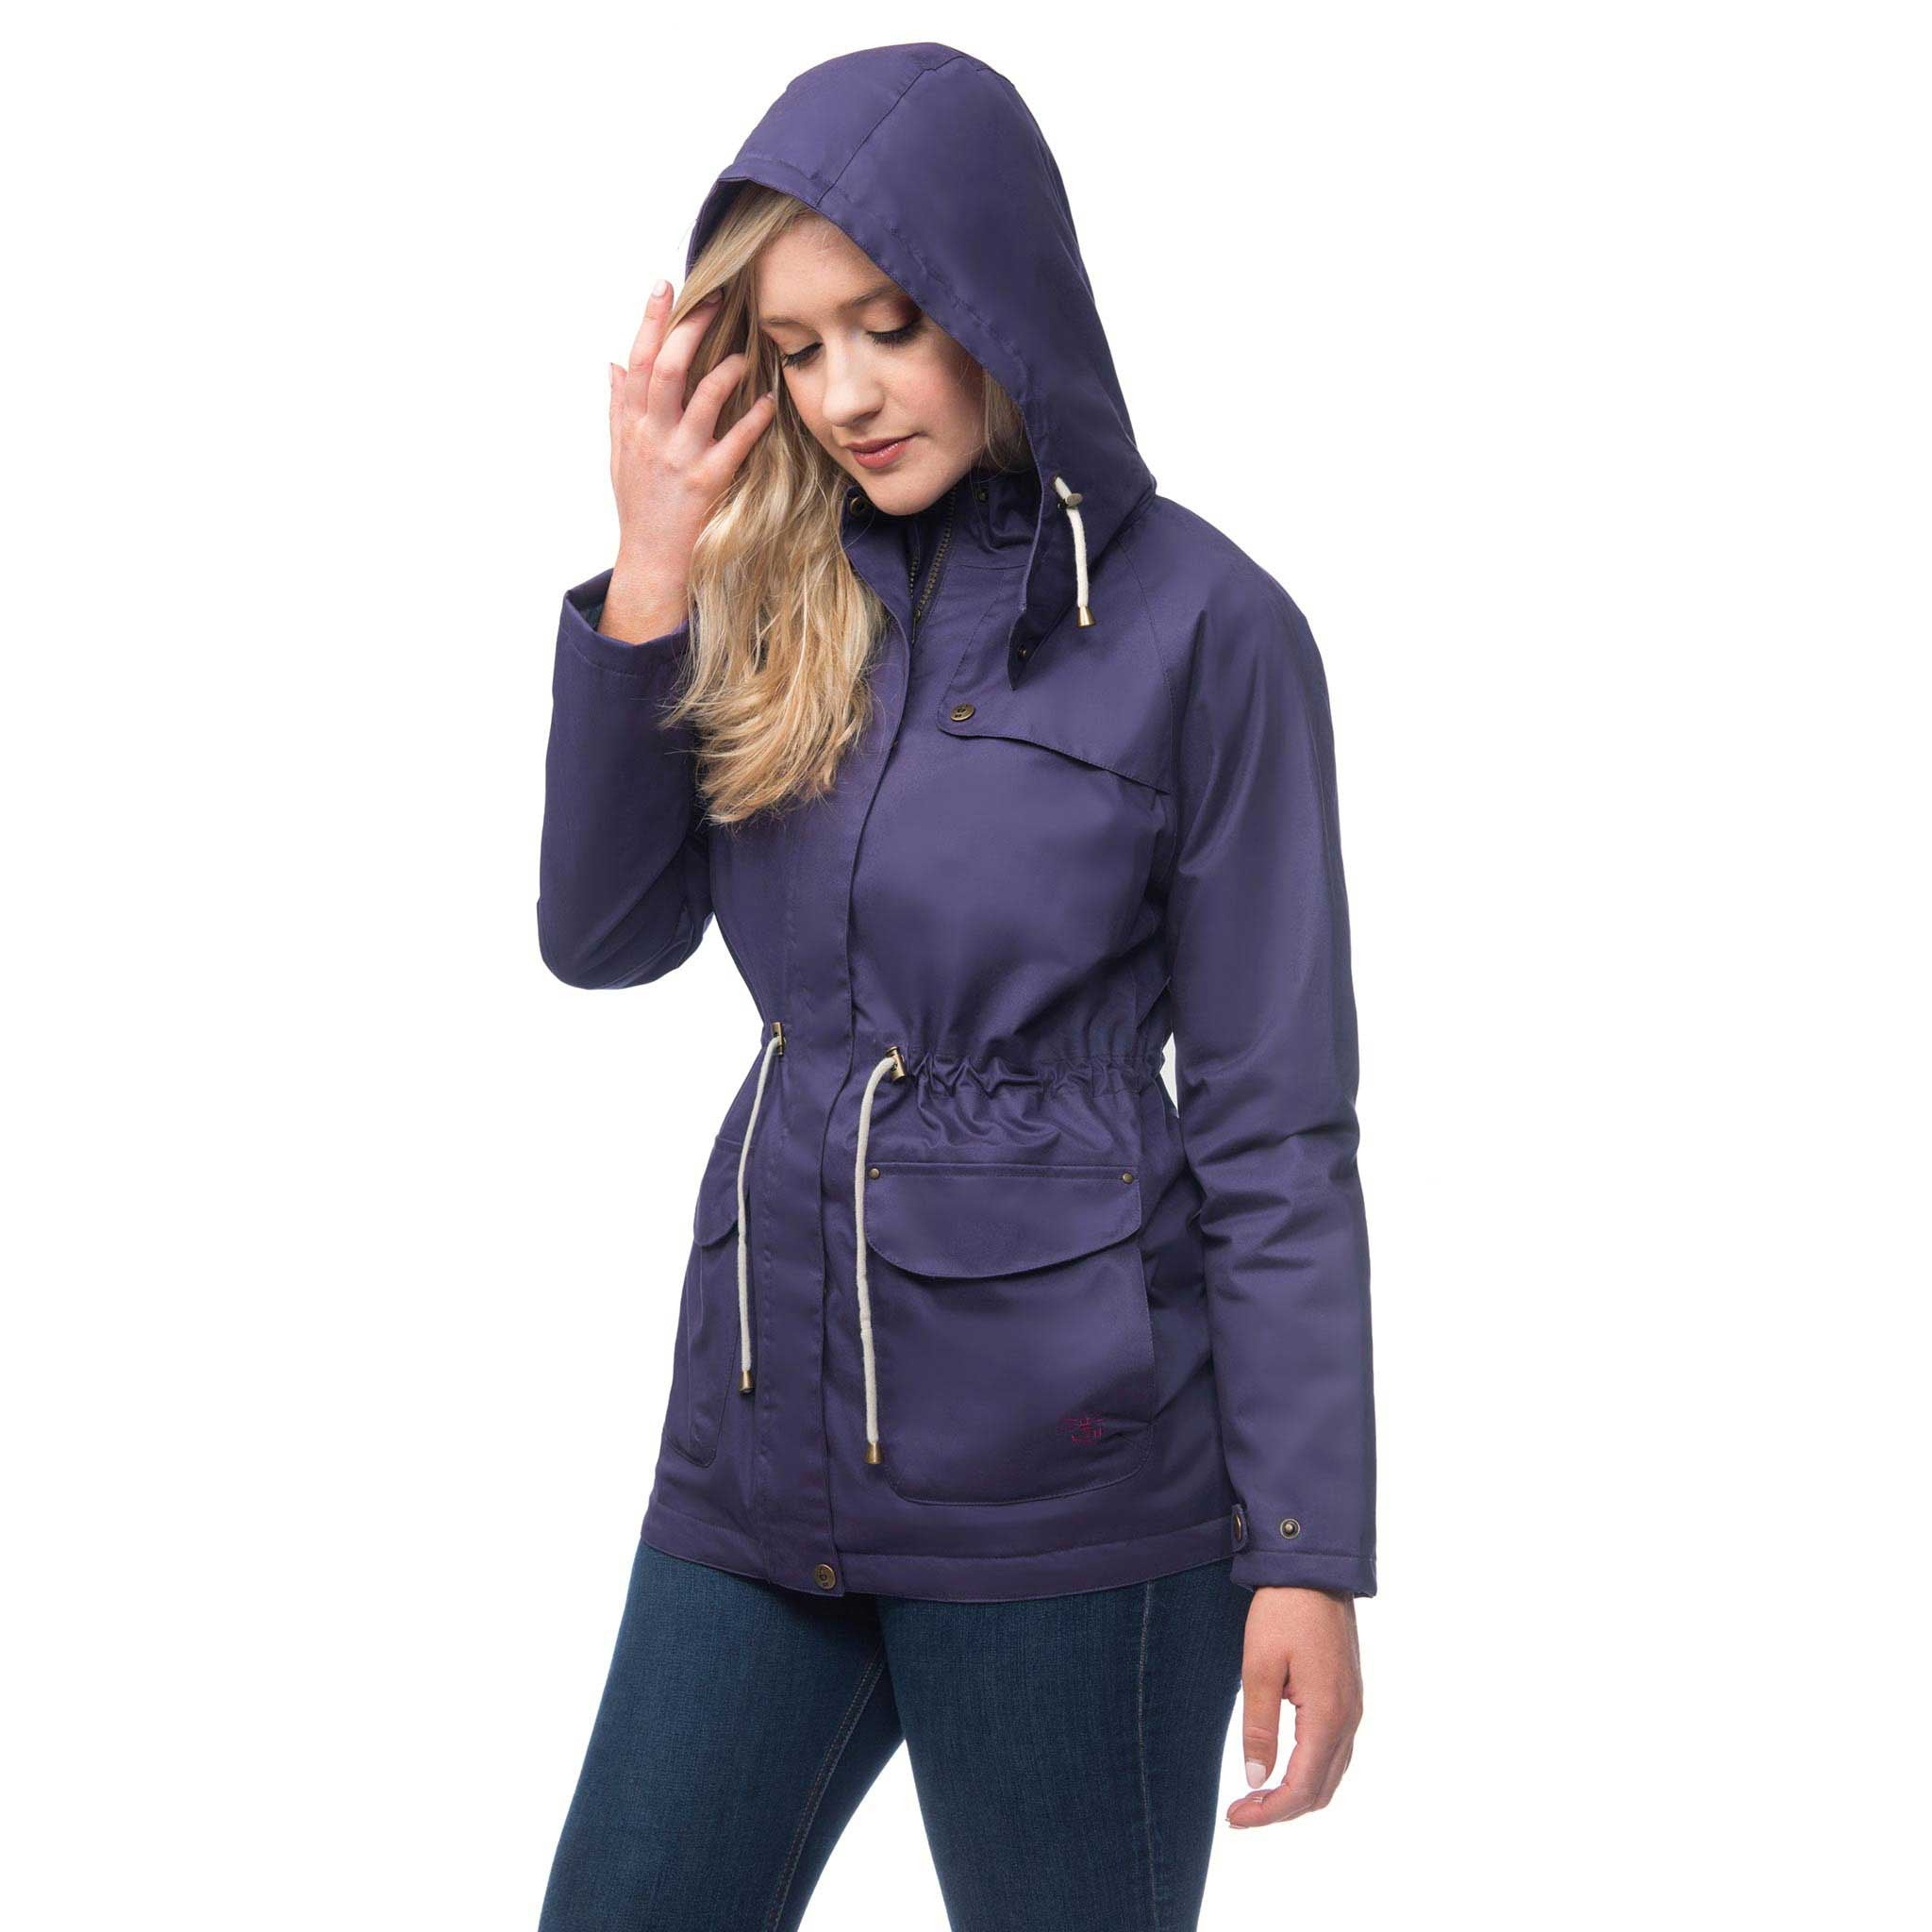 Lighthouse Lana Womens Waterproof Hooded Raincoat in Purple. Zipped and buttoned. Hood up.